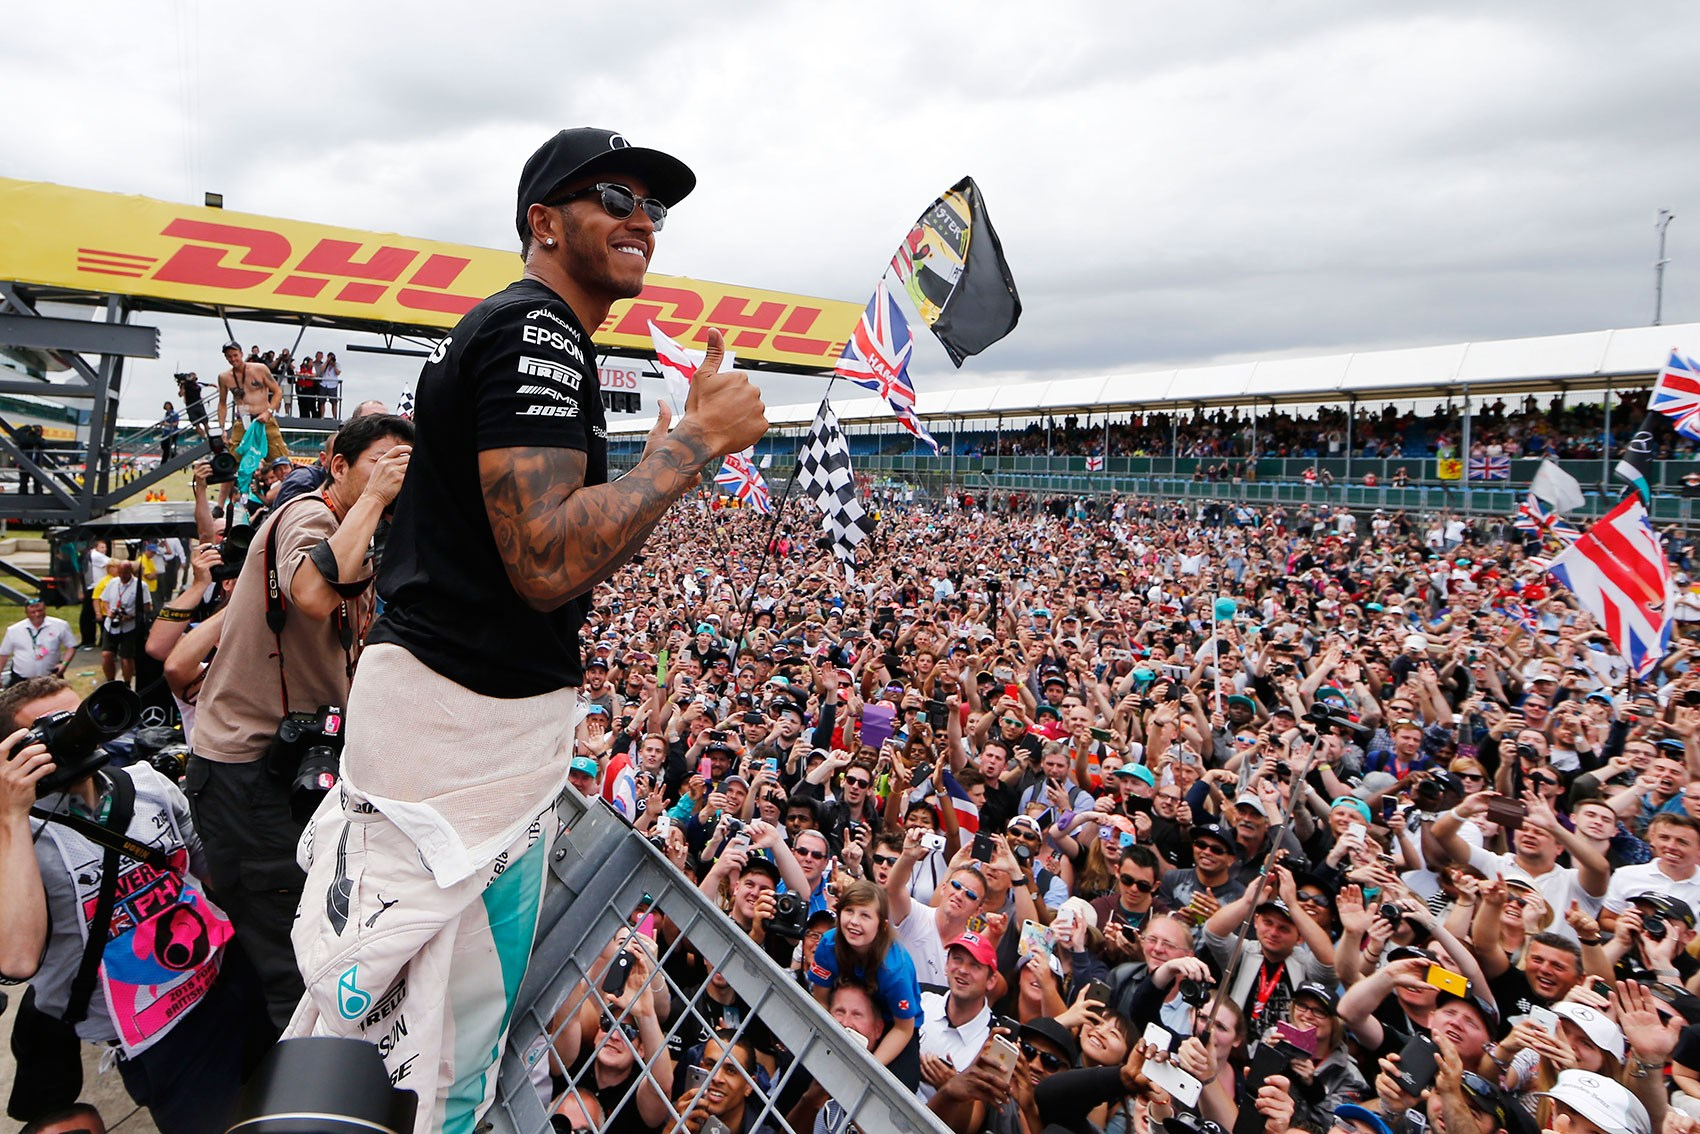 Lewis hamilton wins the 2015 british grand prix